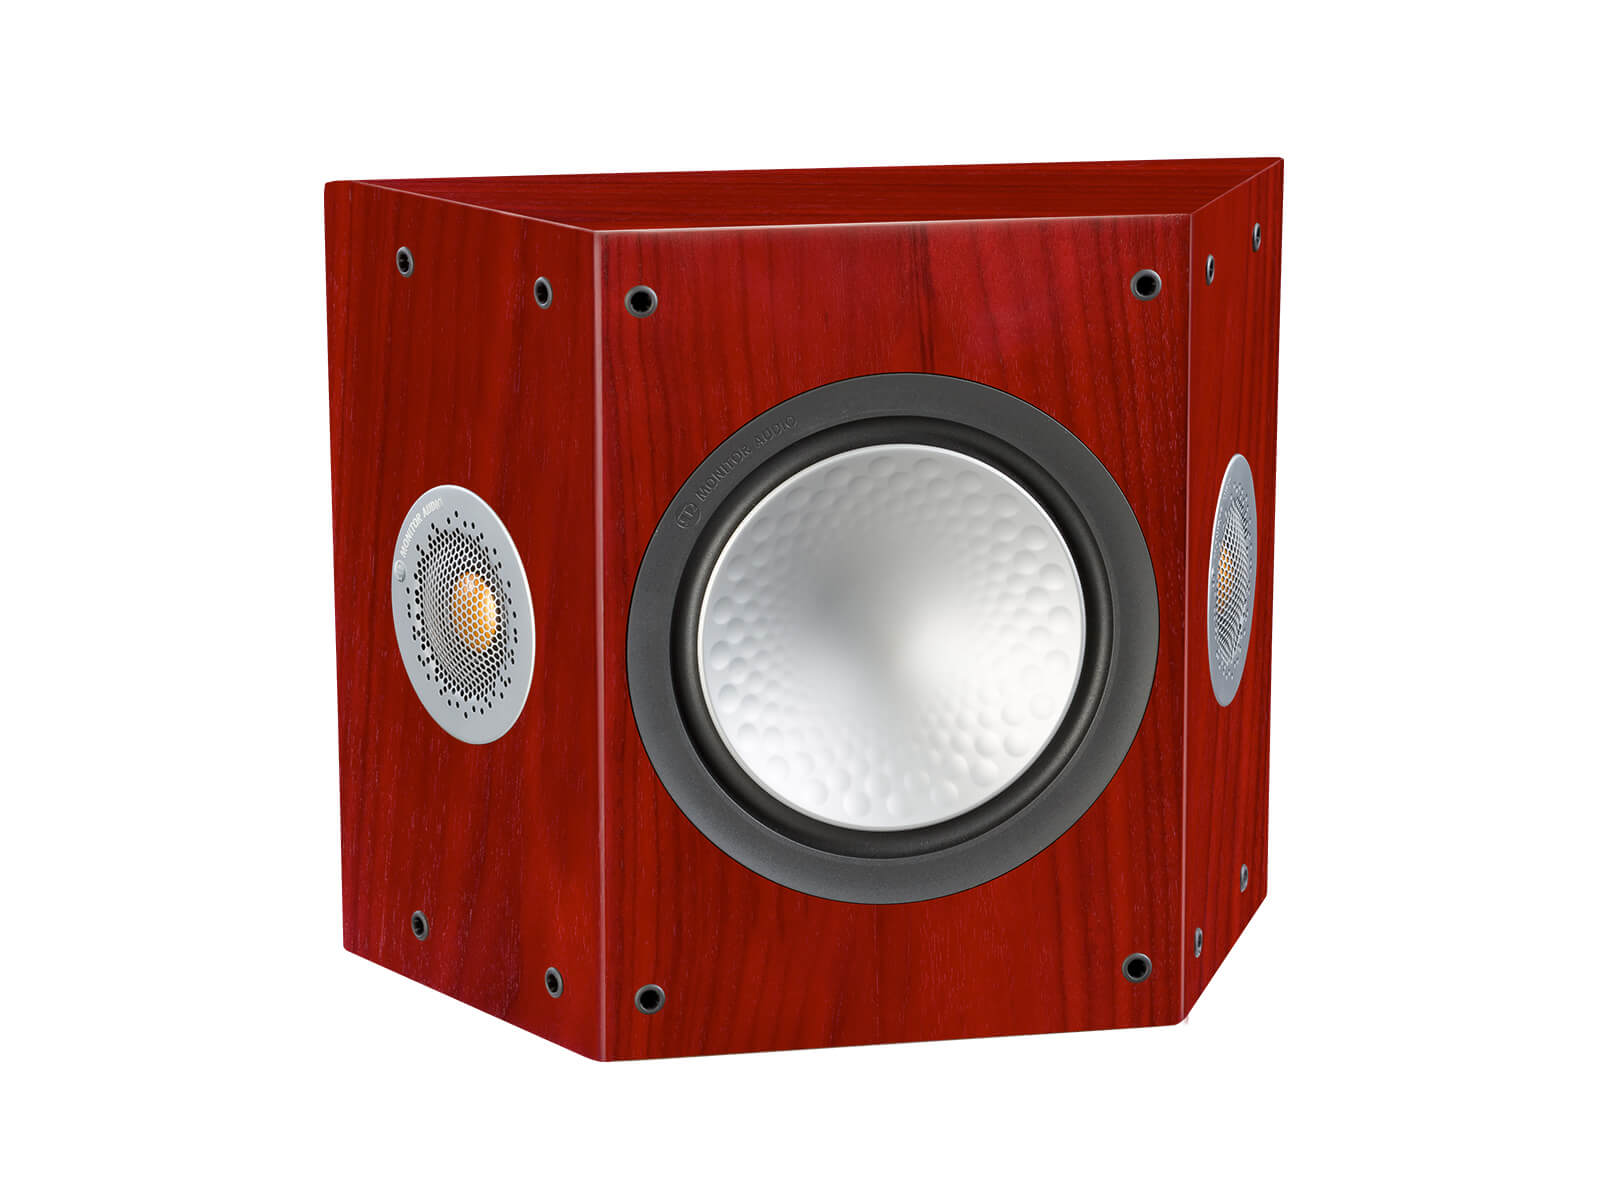 Silver FX, grille-less surround speakers, with a rosenut finish.